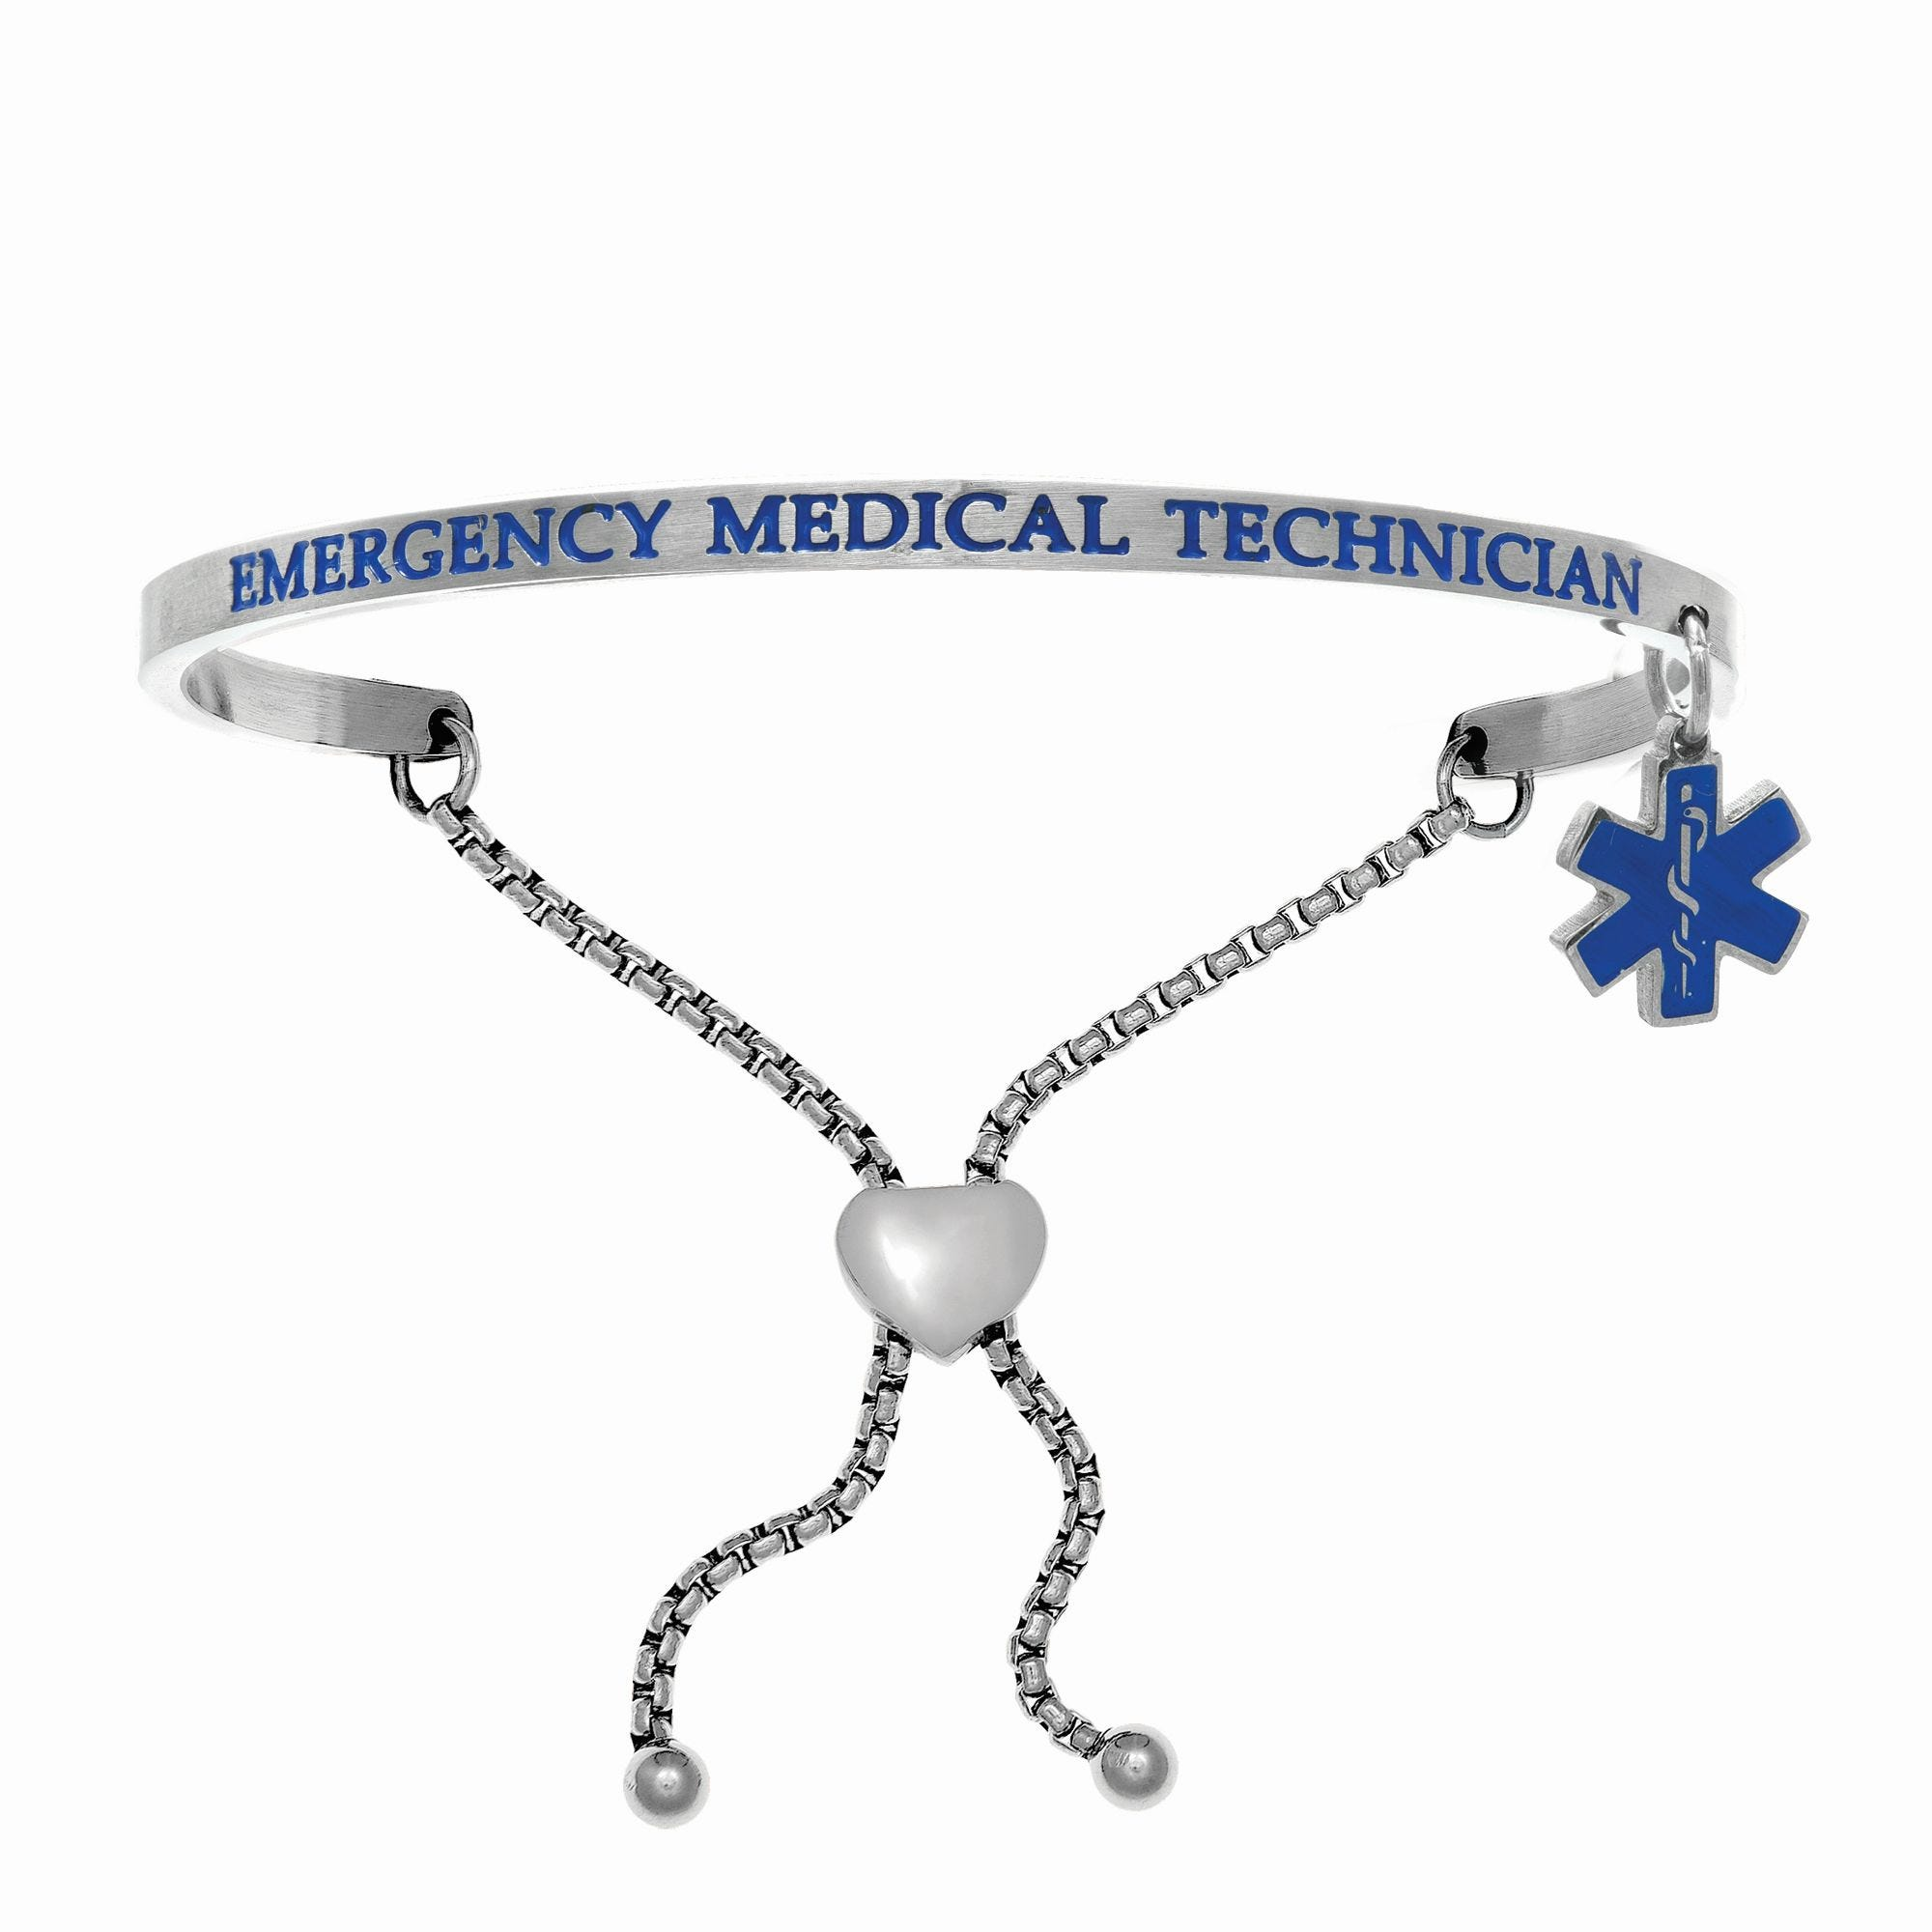 Emergency Medical Technician. Intuitions Bolo Bracelet in White Stainless Steel